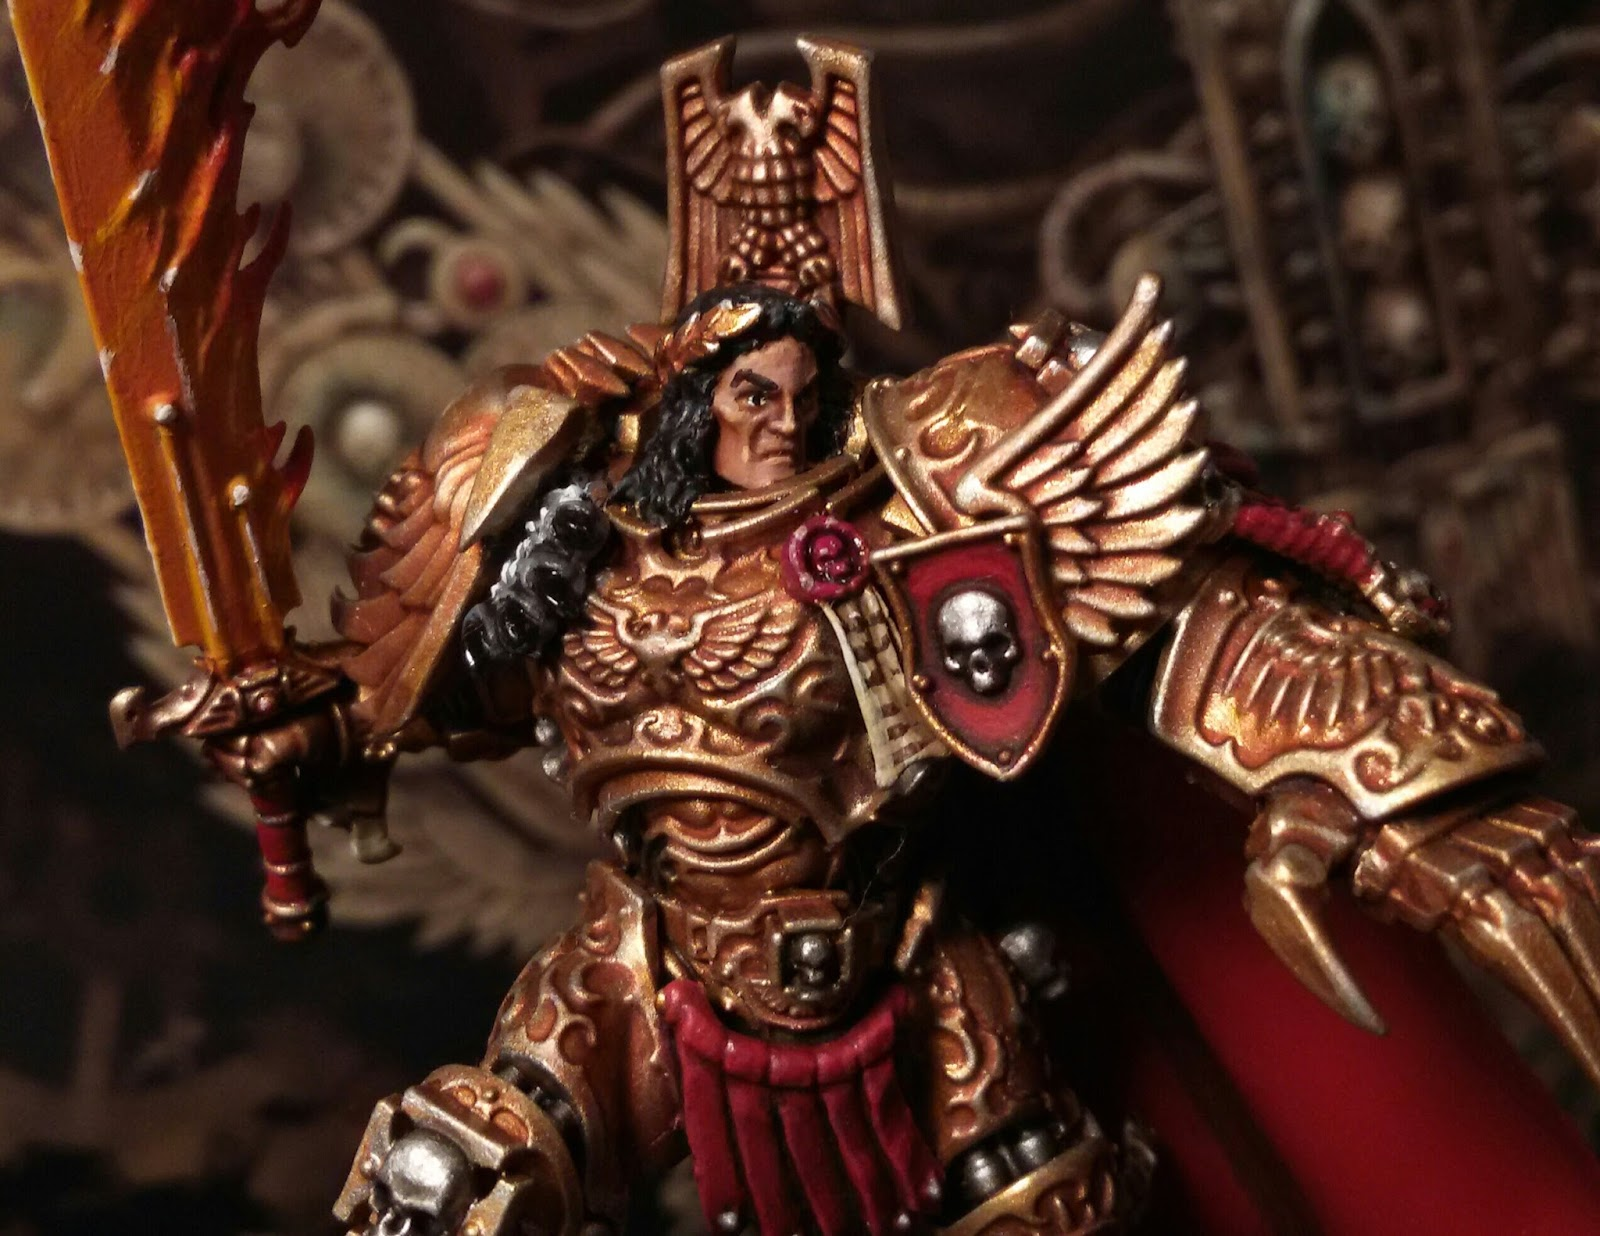 What's On Your Table: God Emperor of Mankind Conversion ...